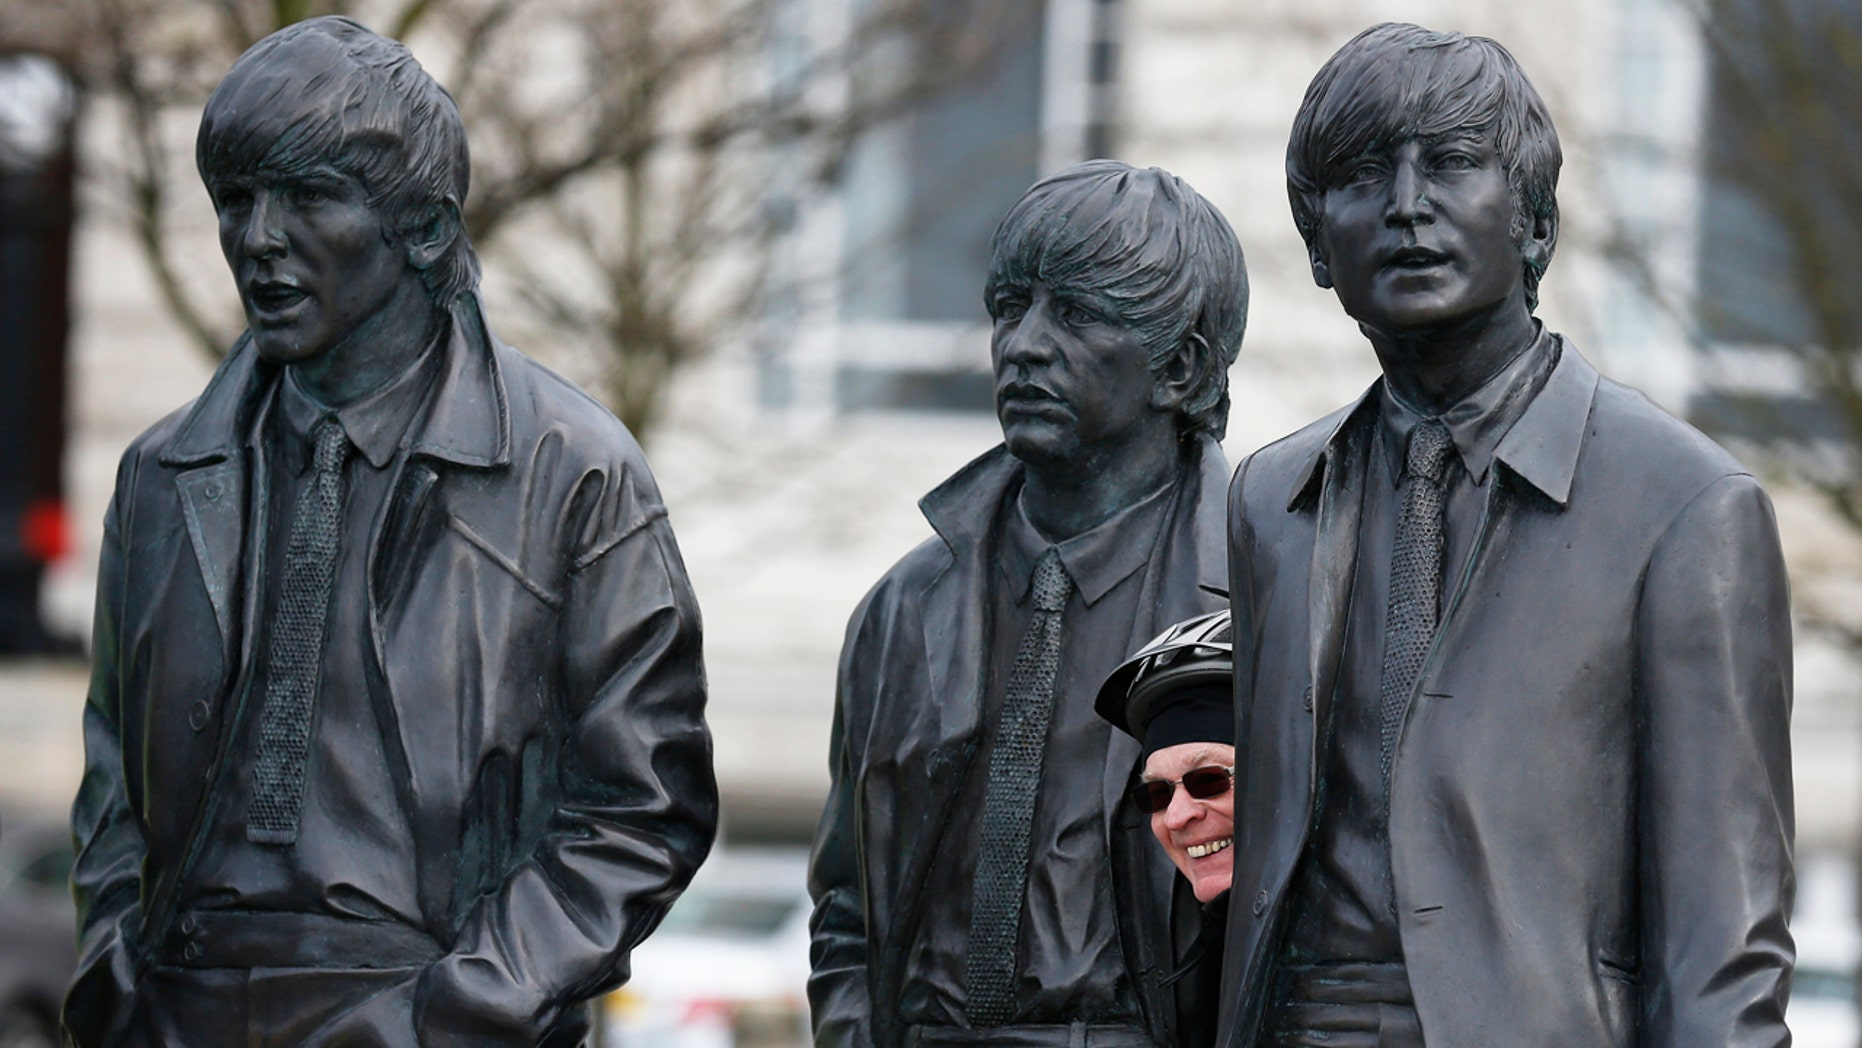 A fan poses next to a statue of The Beatles at the Pier Head in Liverpool, Britain March 9, 2016.